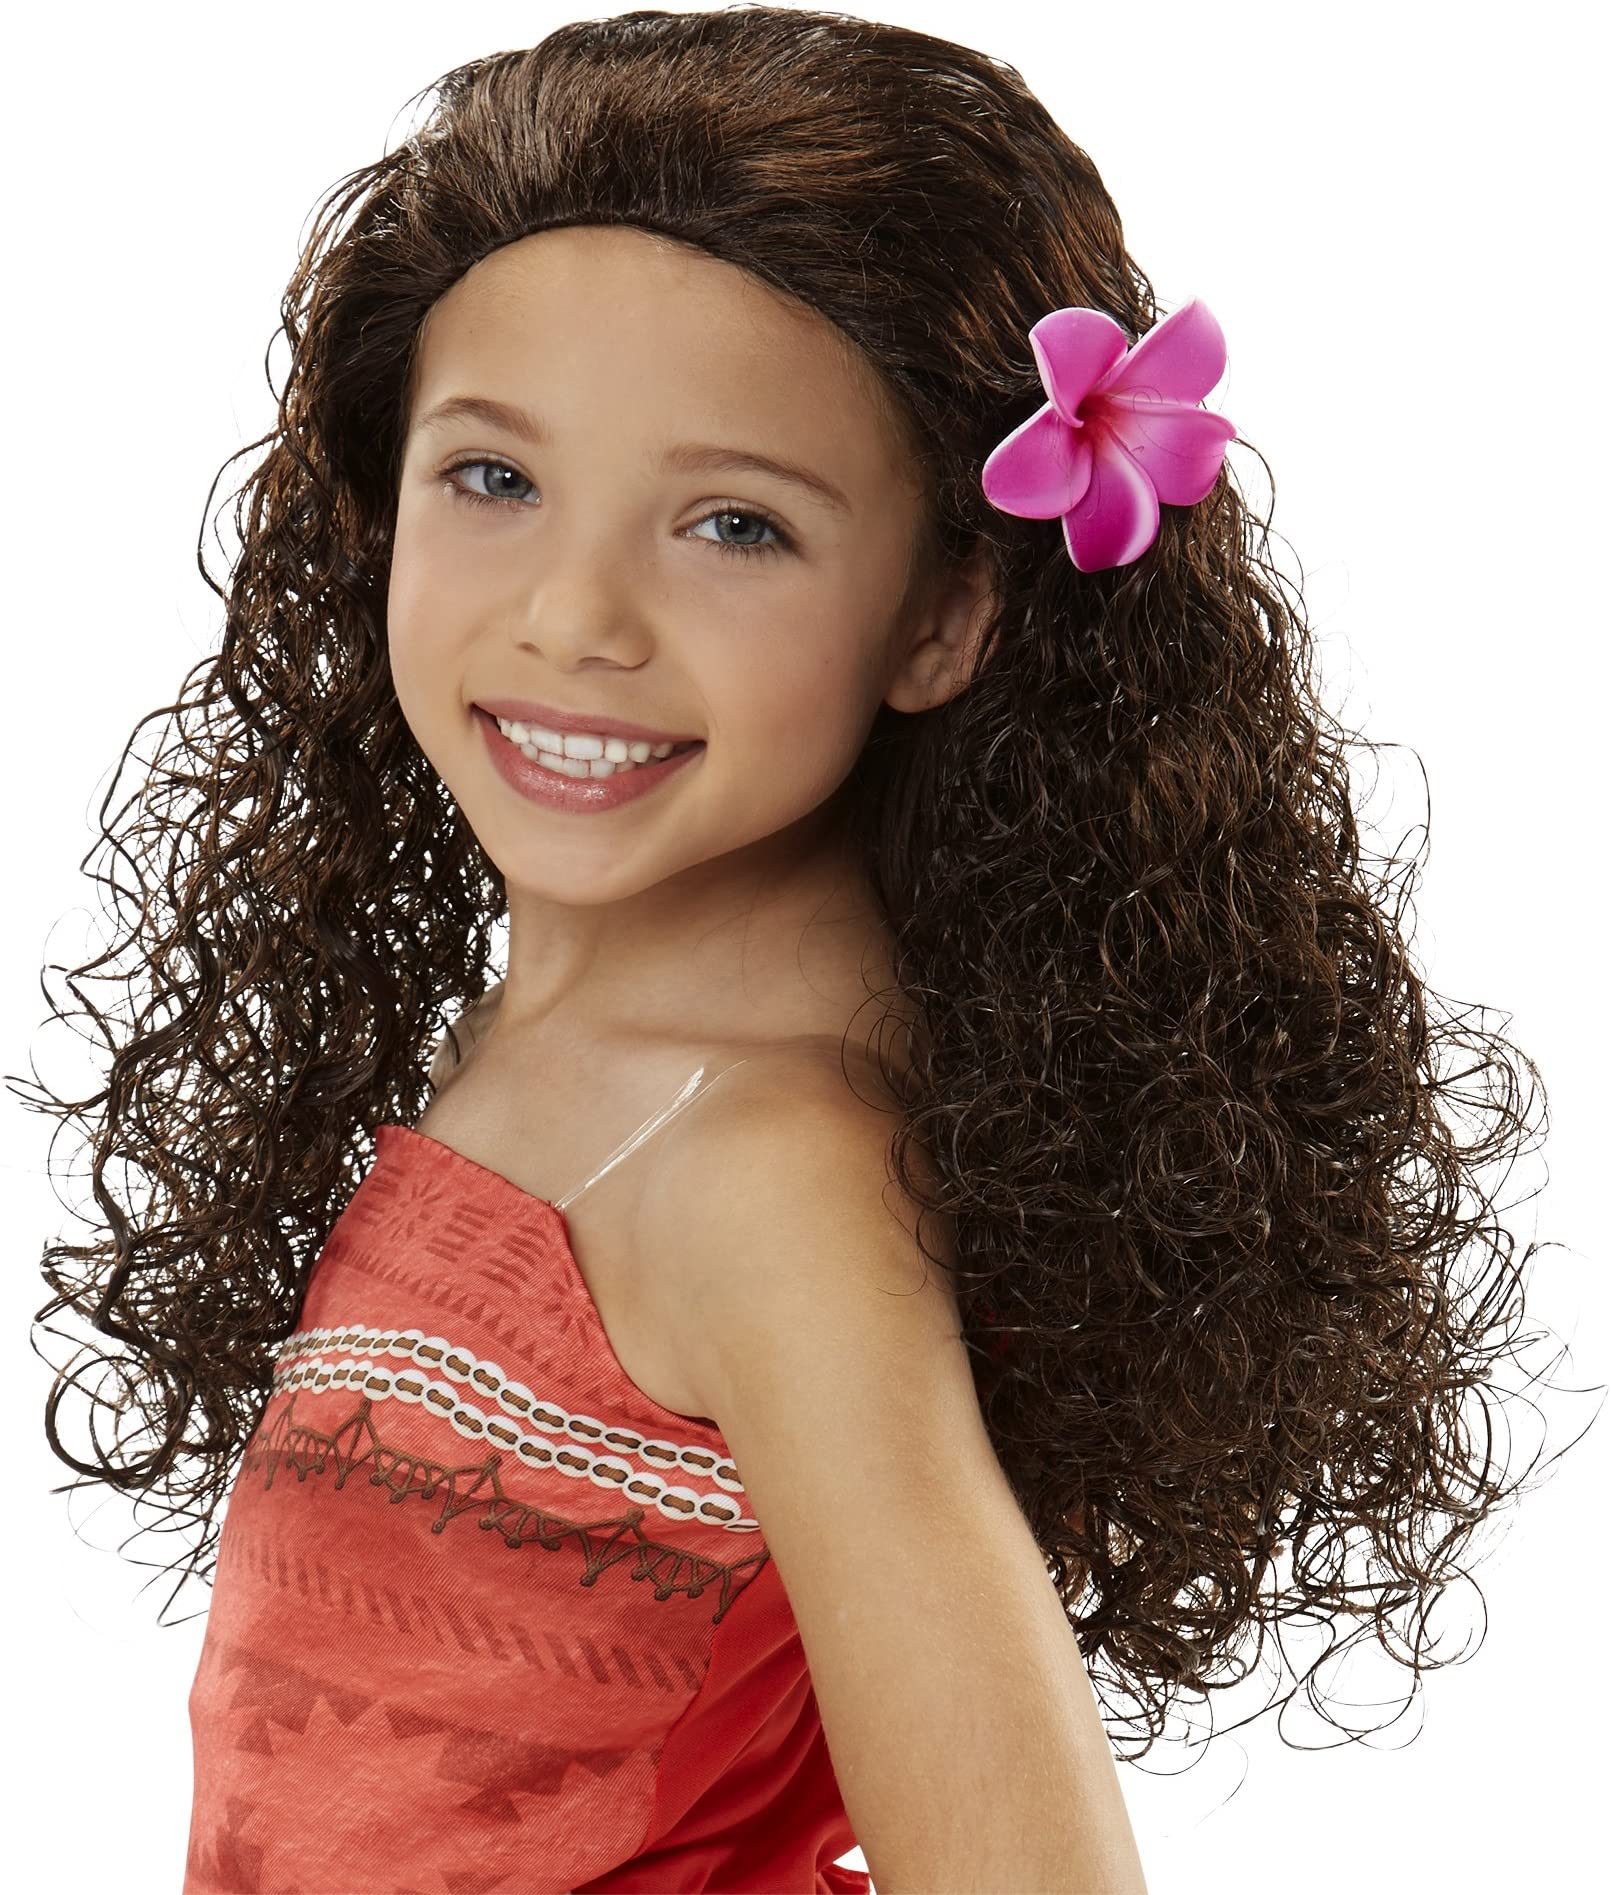 Costumes · Wigs Shop by category  sc 1 st  Amazon.com & Girlu0027s Halloween Costumes and Accessories | Amazon.com